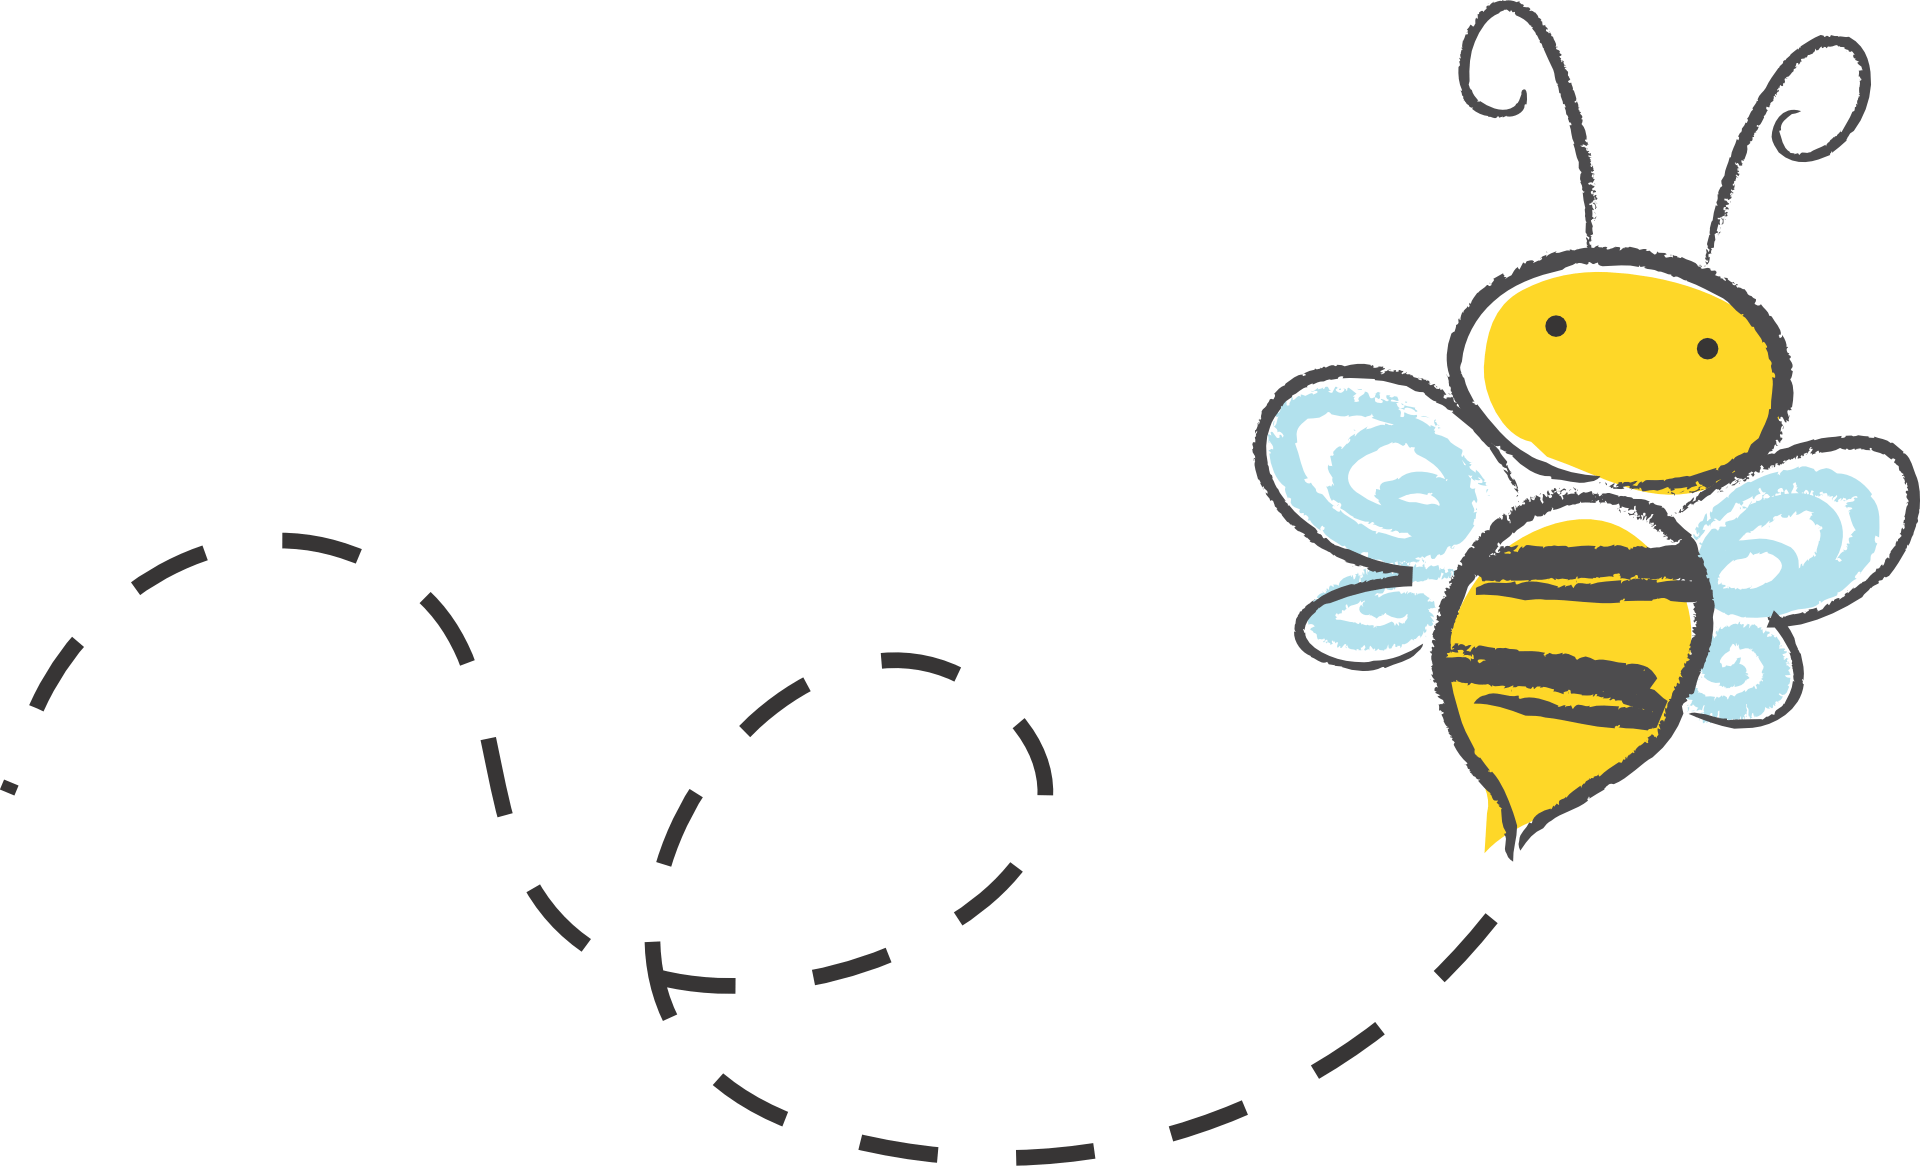 Flower and bee clipart picture library library How Using A Bullet Journal Can Help With Anxiety and Depression ... picture library library